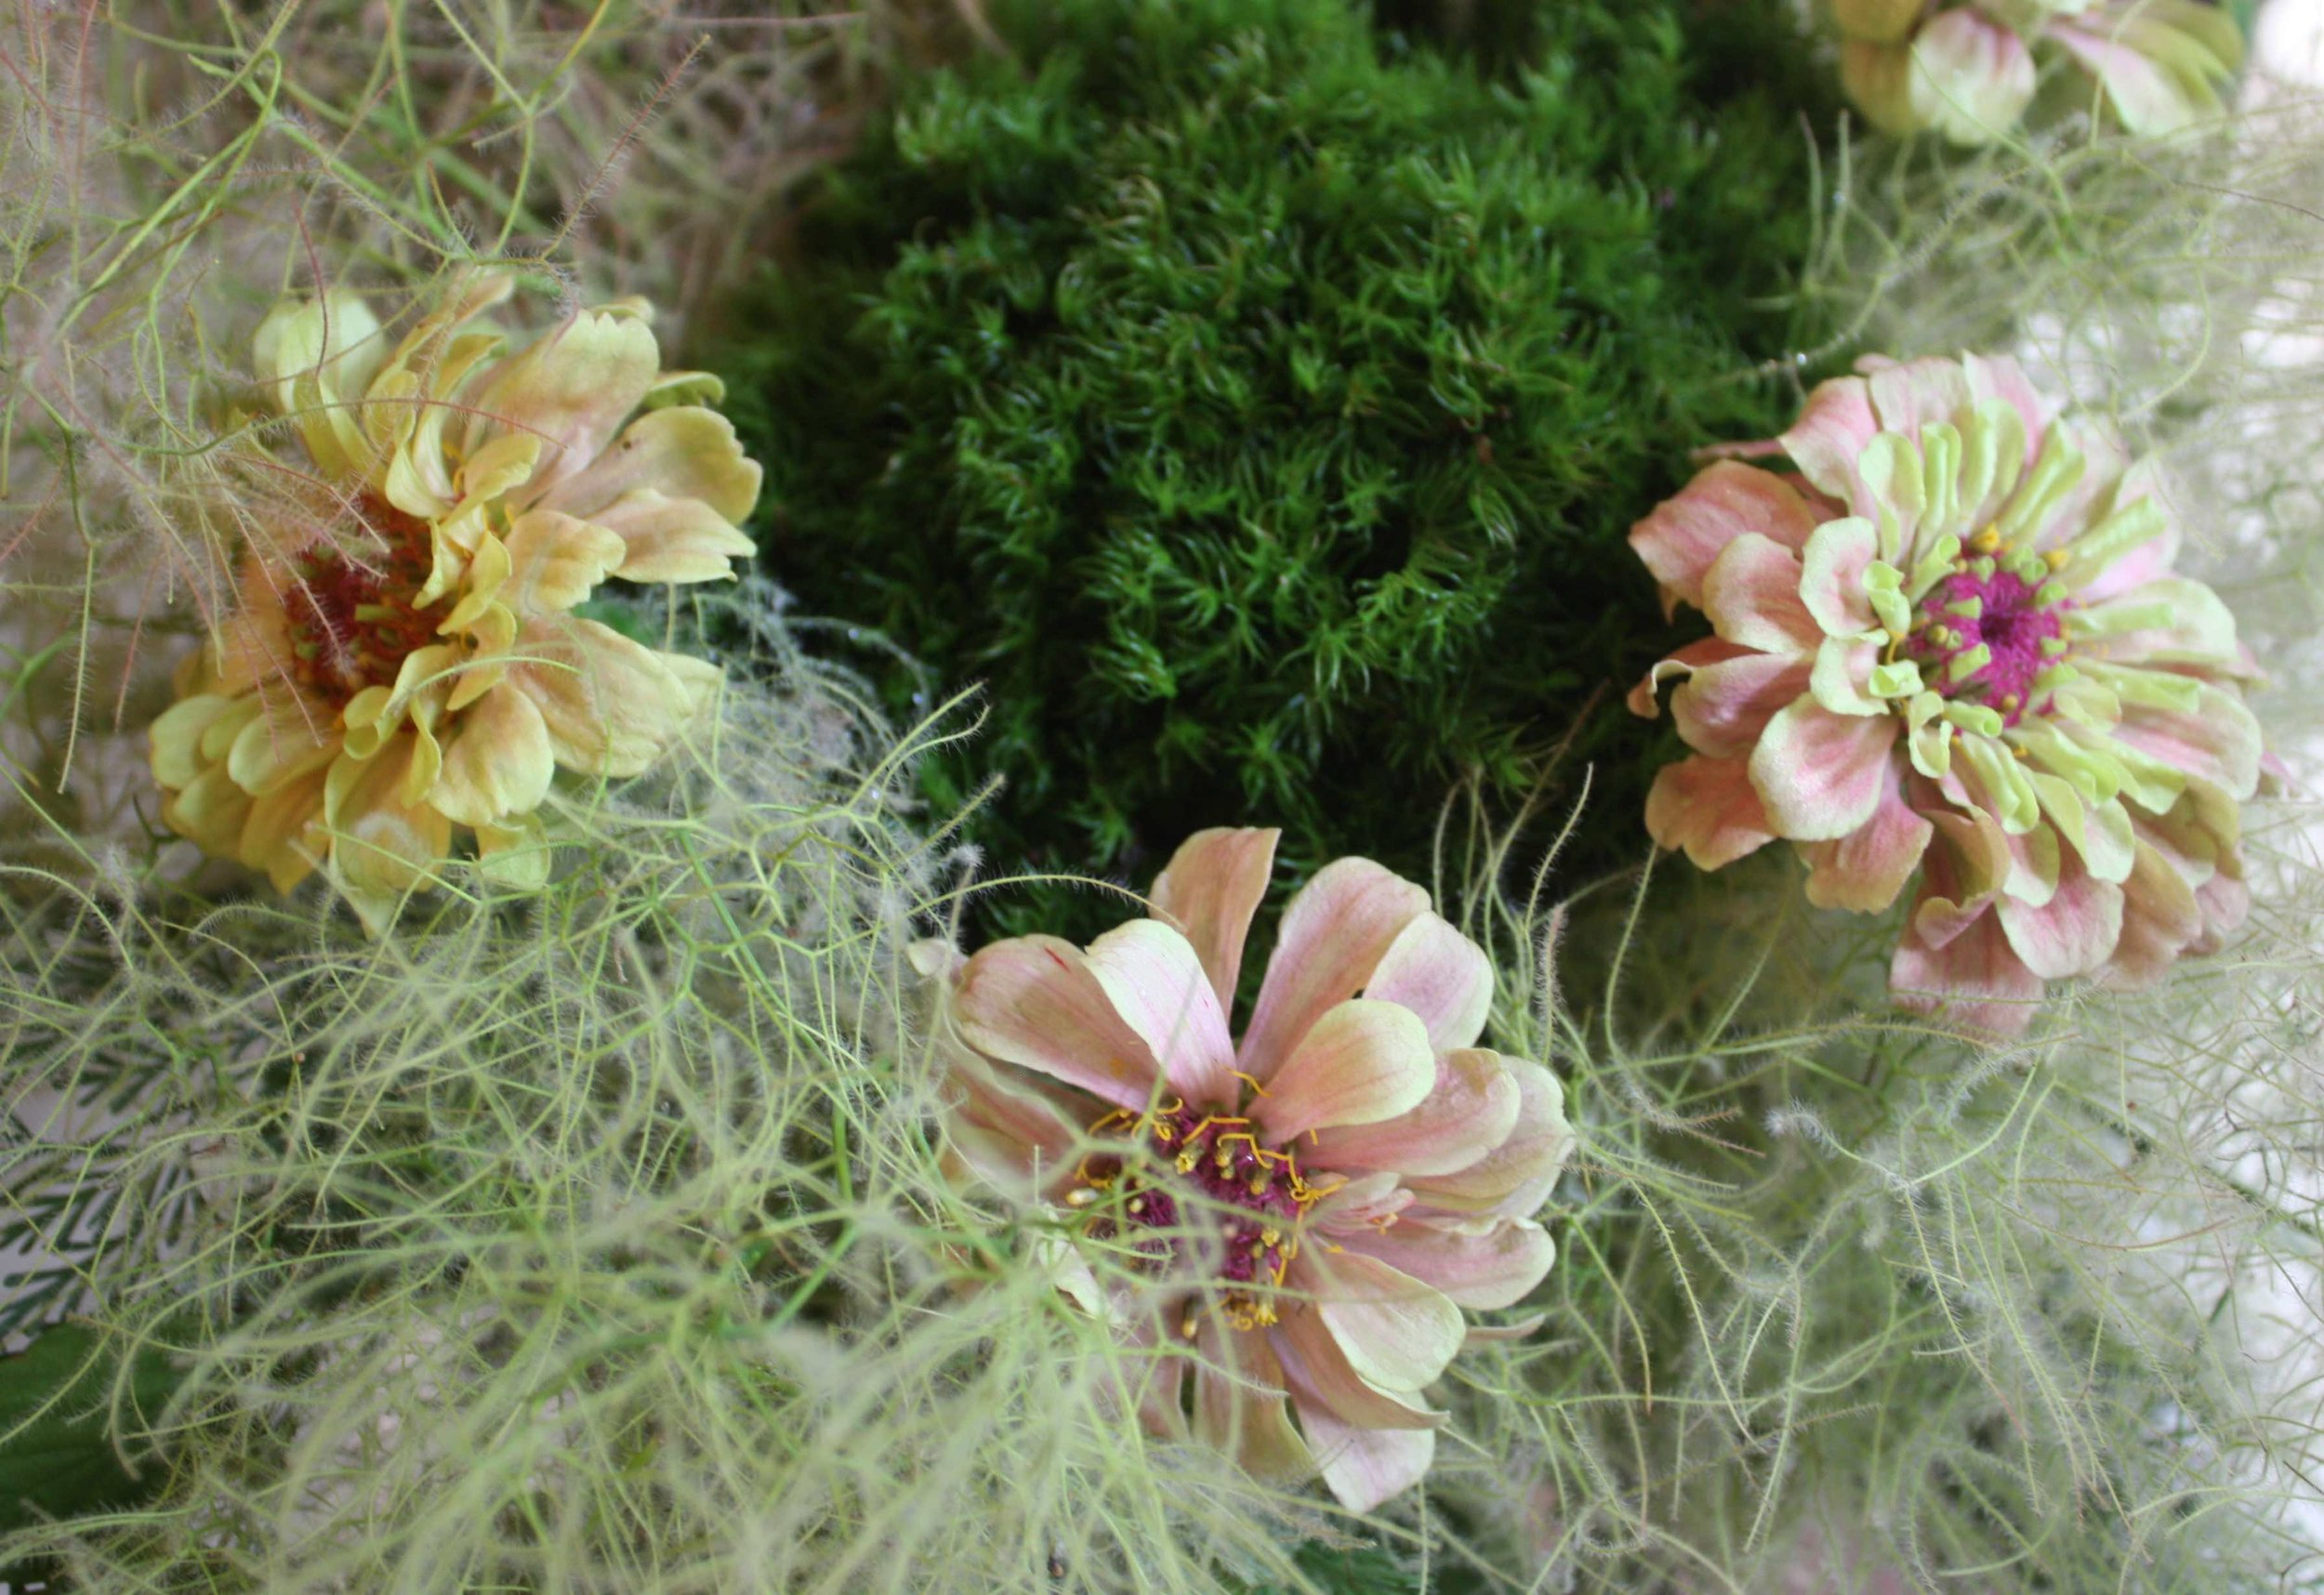 Zinnia, smoke tree and fresh moss. From one of my lessons.